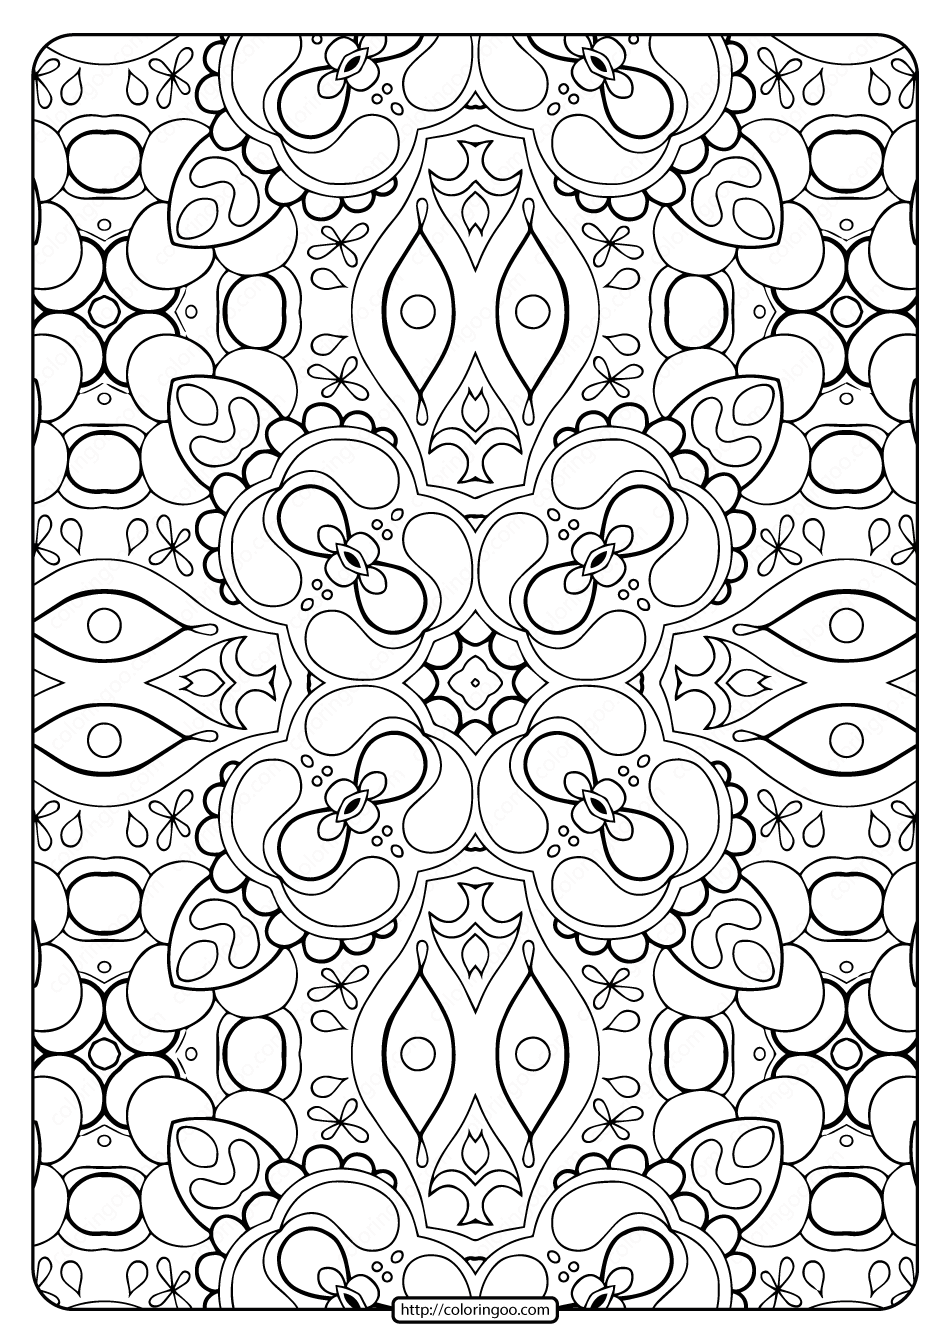 coloring prints for adults free printable abstract coloring pages for adults adults prints for coloring